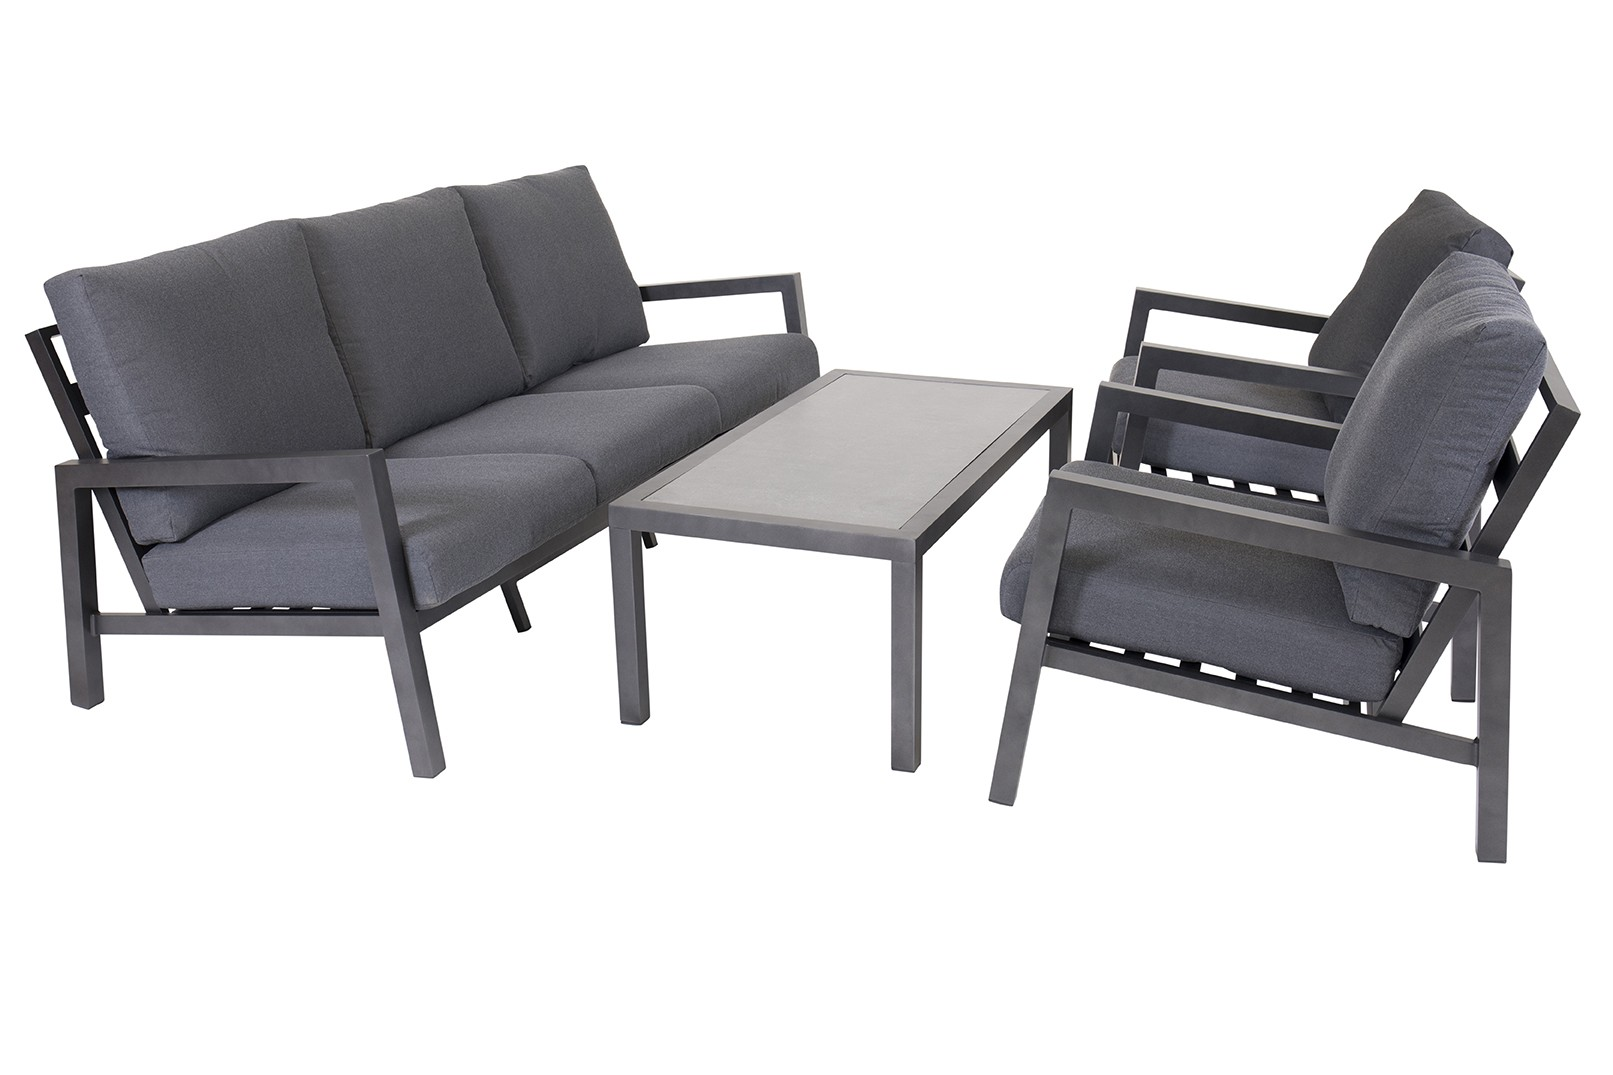 garda-kd-lounge-sofa-311table